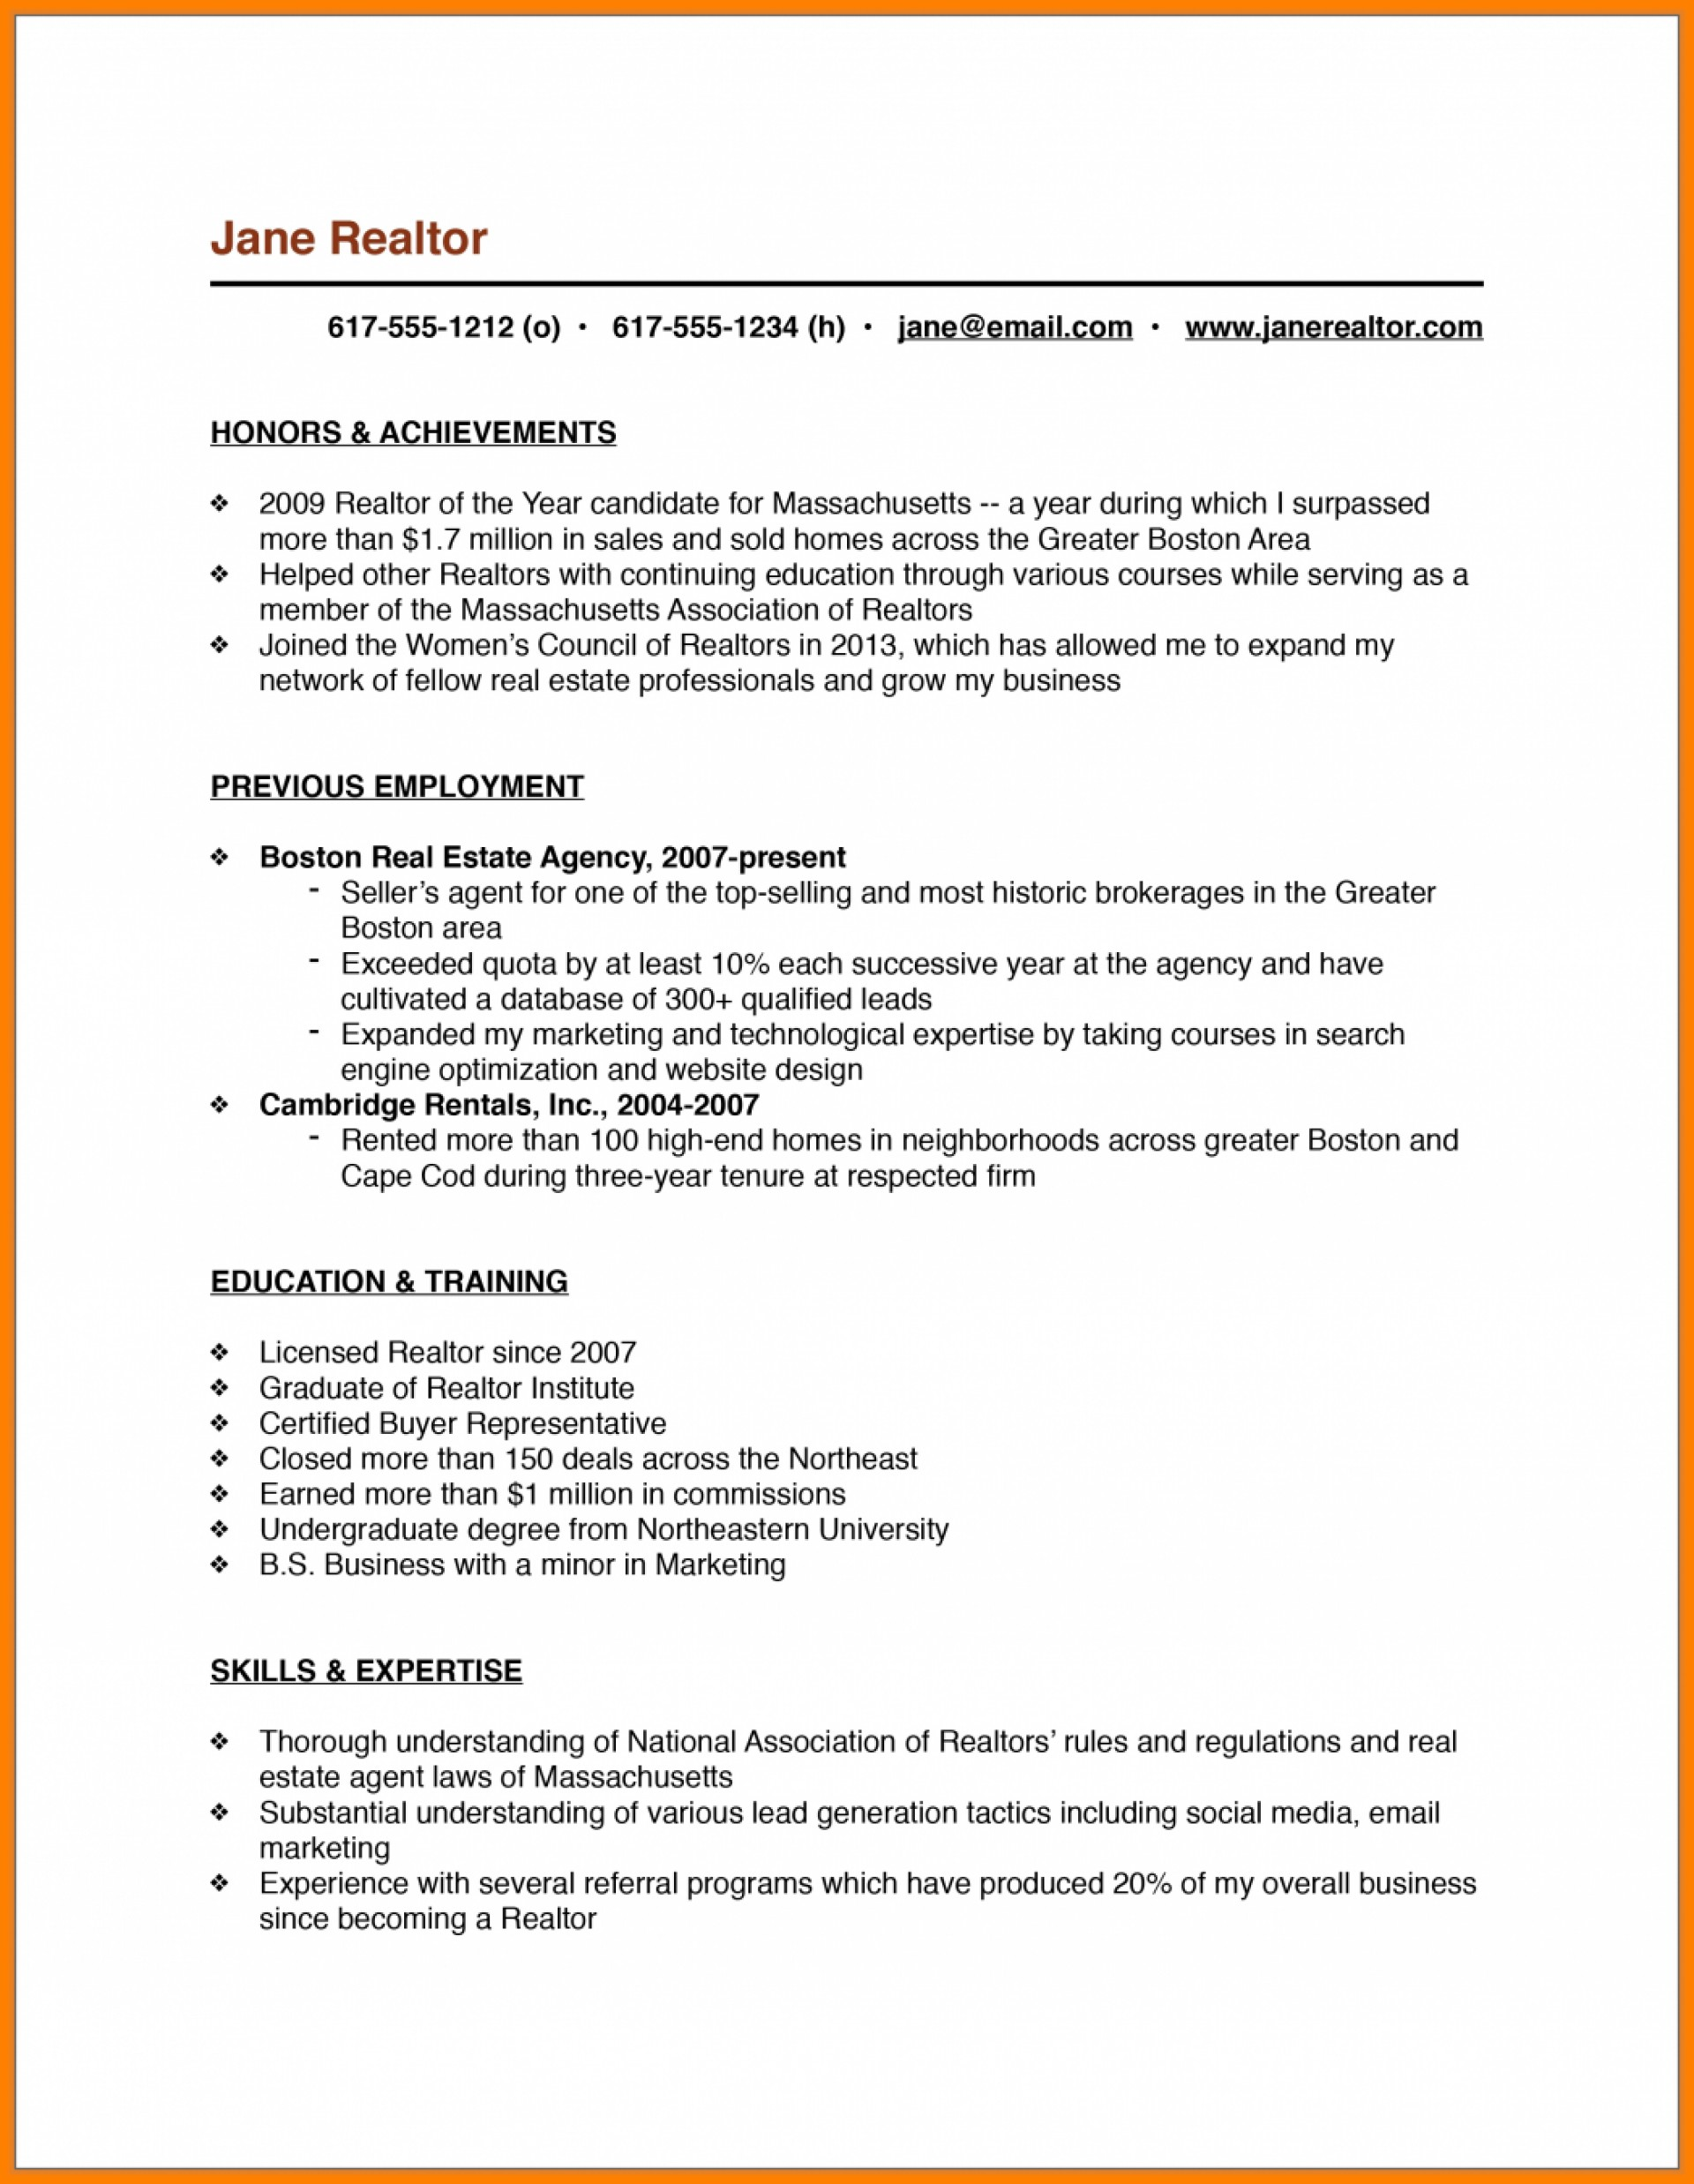 012 Social Work Essay Writers Custom Paper Academic Writing Service Scholarship Examples Awesome Collection Of Personal Statement Stunning Free Graduate Evidence Based Practice In 1048x1351 Why I Outstanding Want To Be A Worker Study Do Become Became 1920